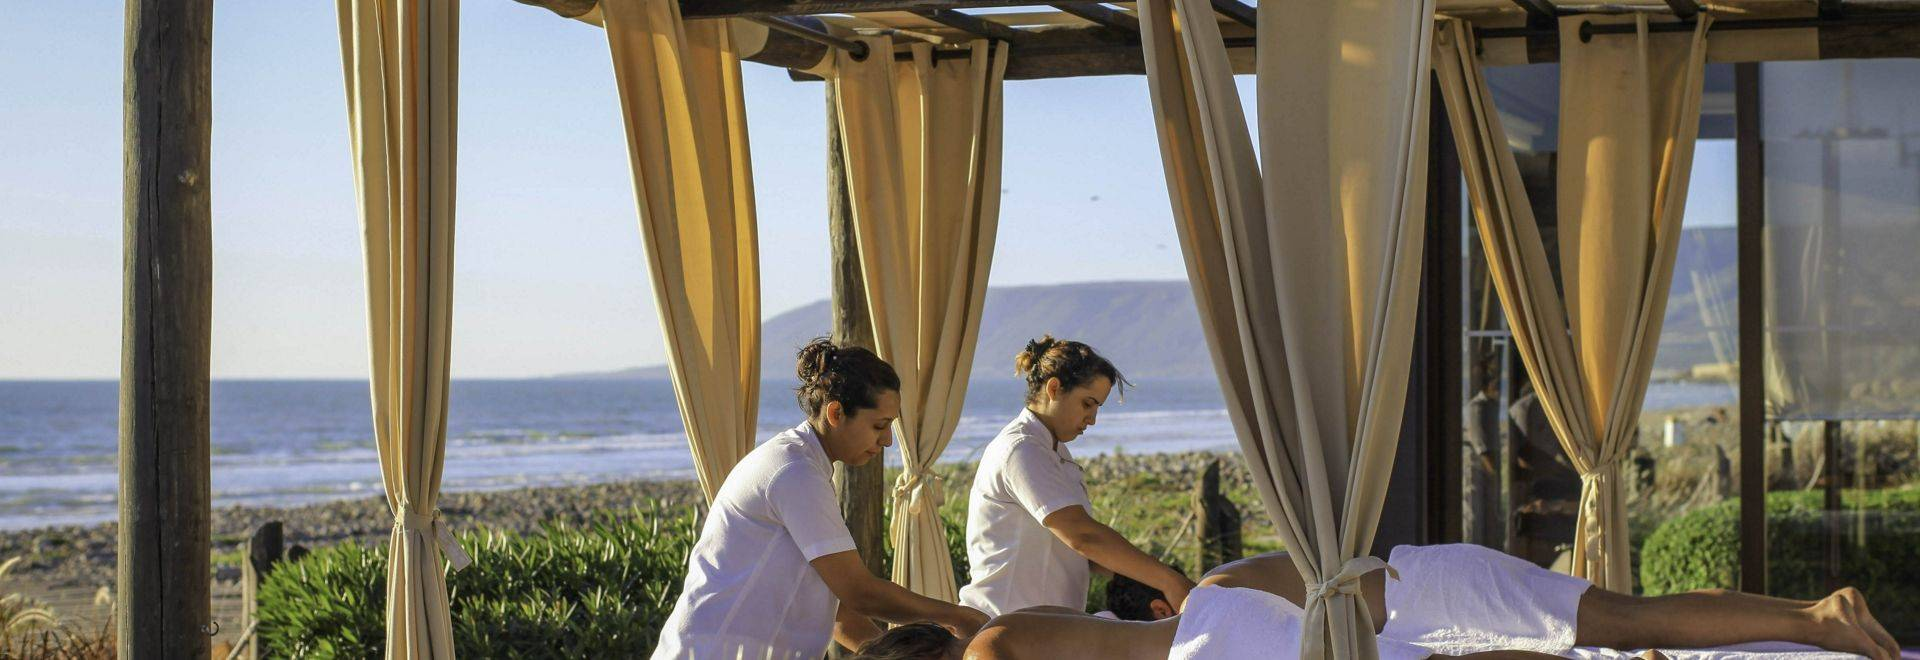 Paradis-Plage-outdoor-massage-2.jpg